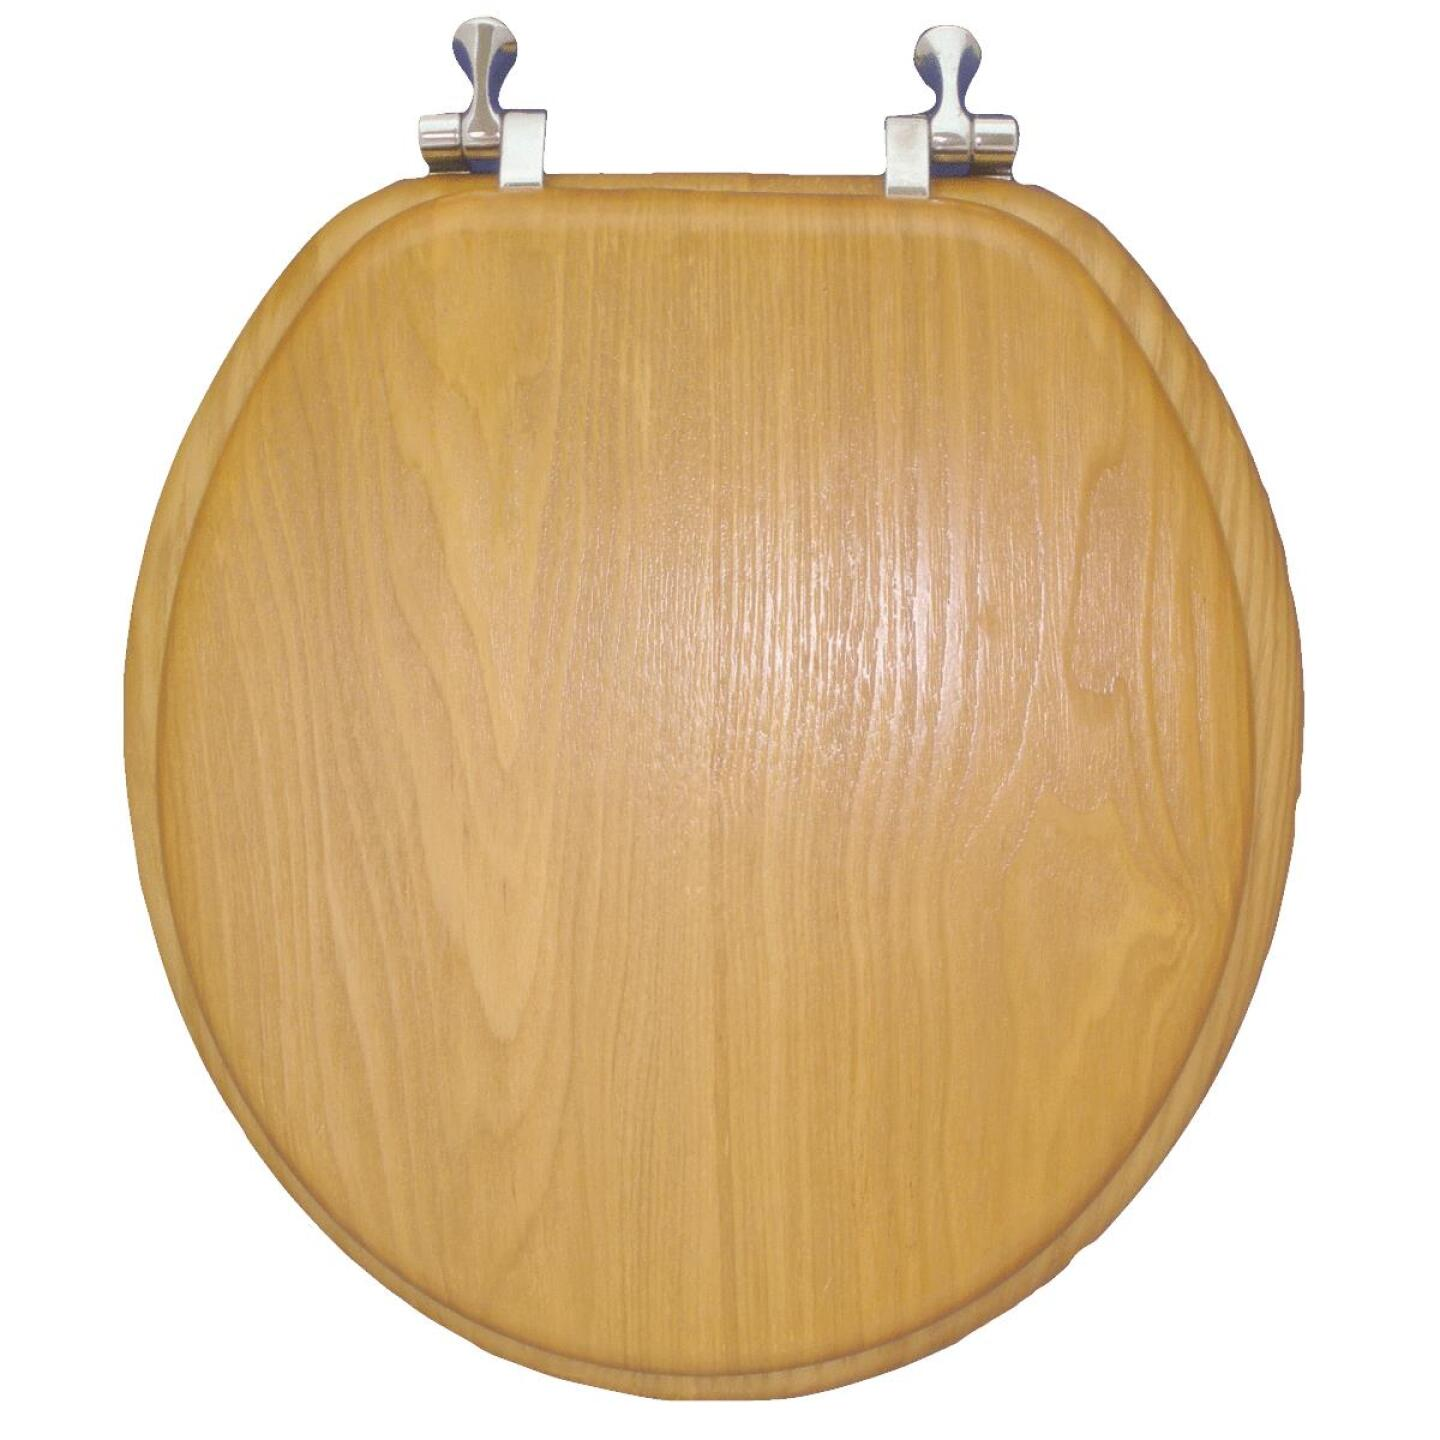 Home Impressions Round Closed Front Oak Veneer Toilet Seat Image 2